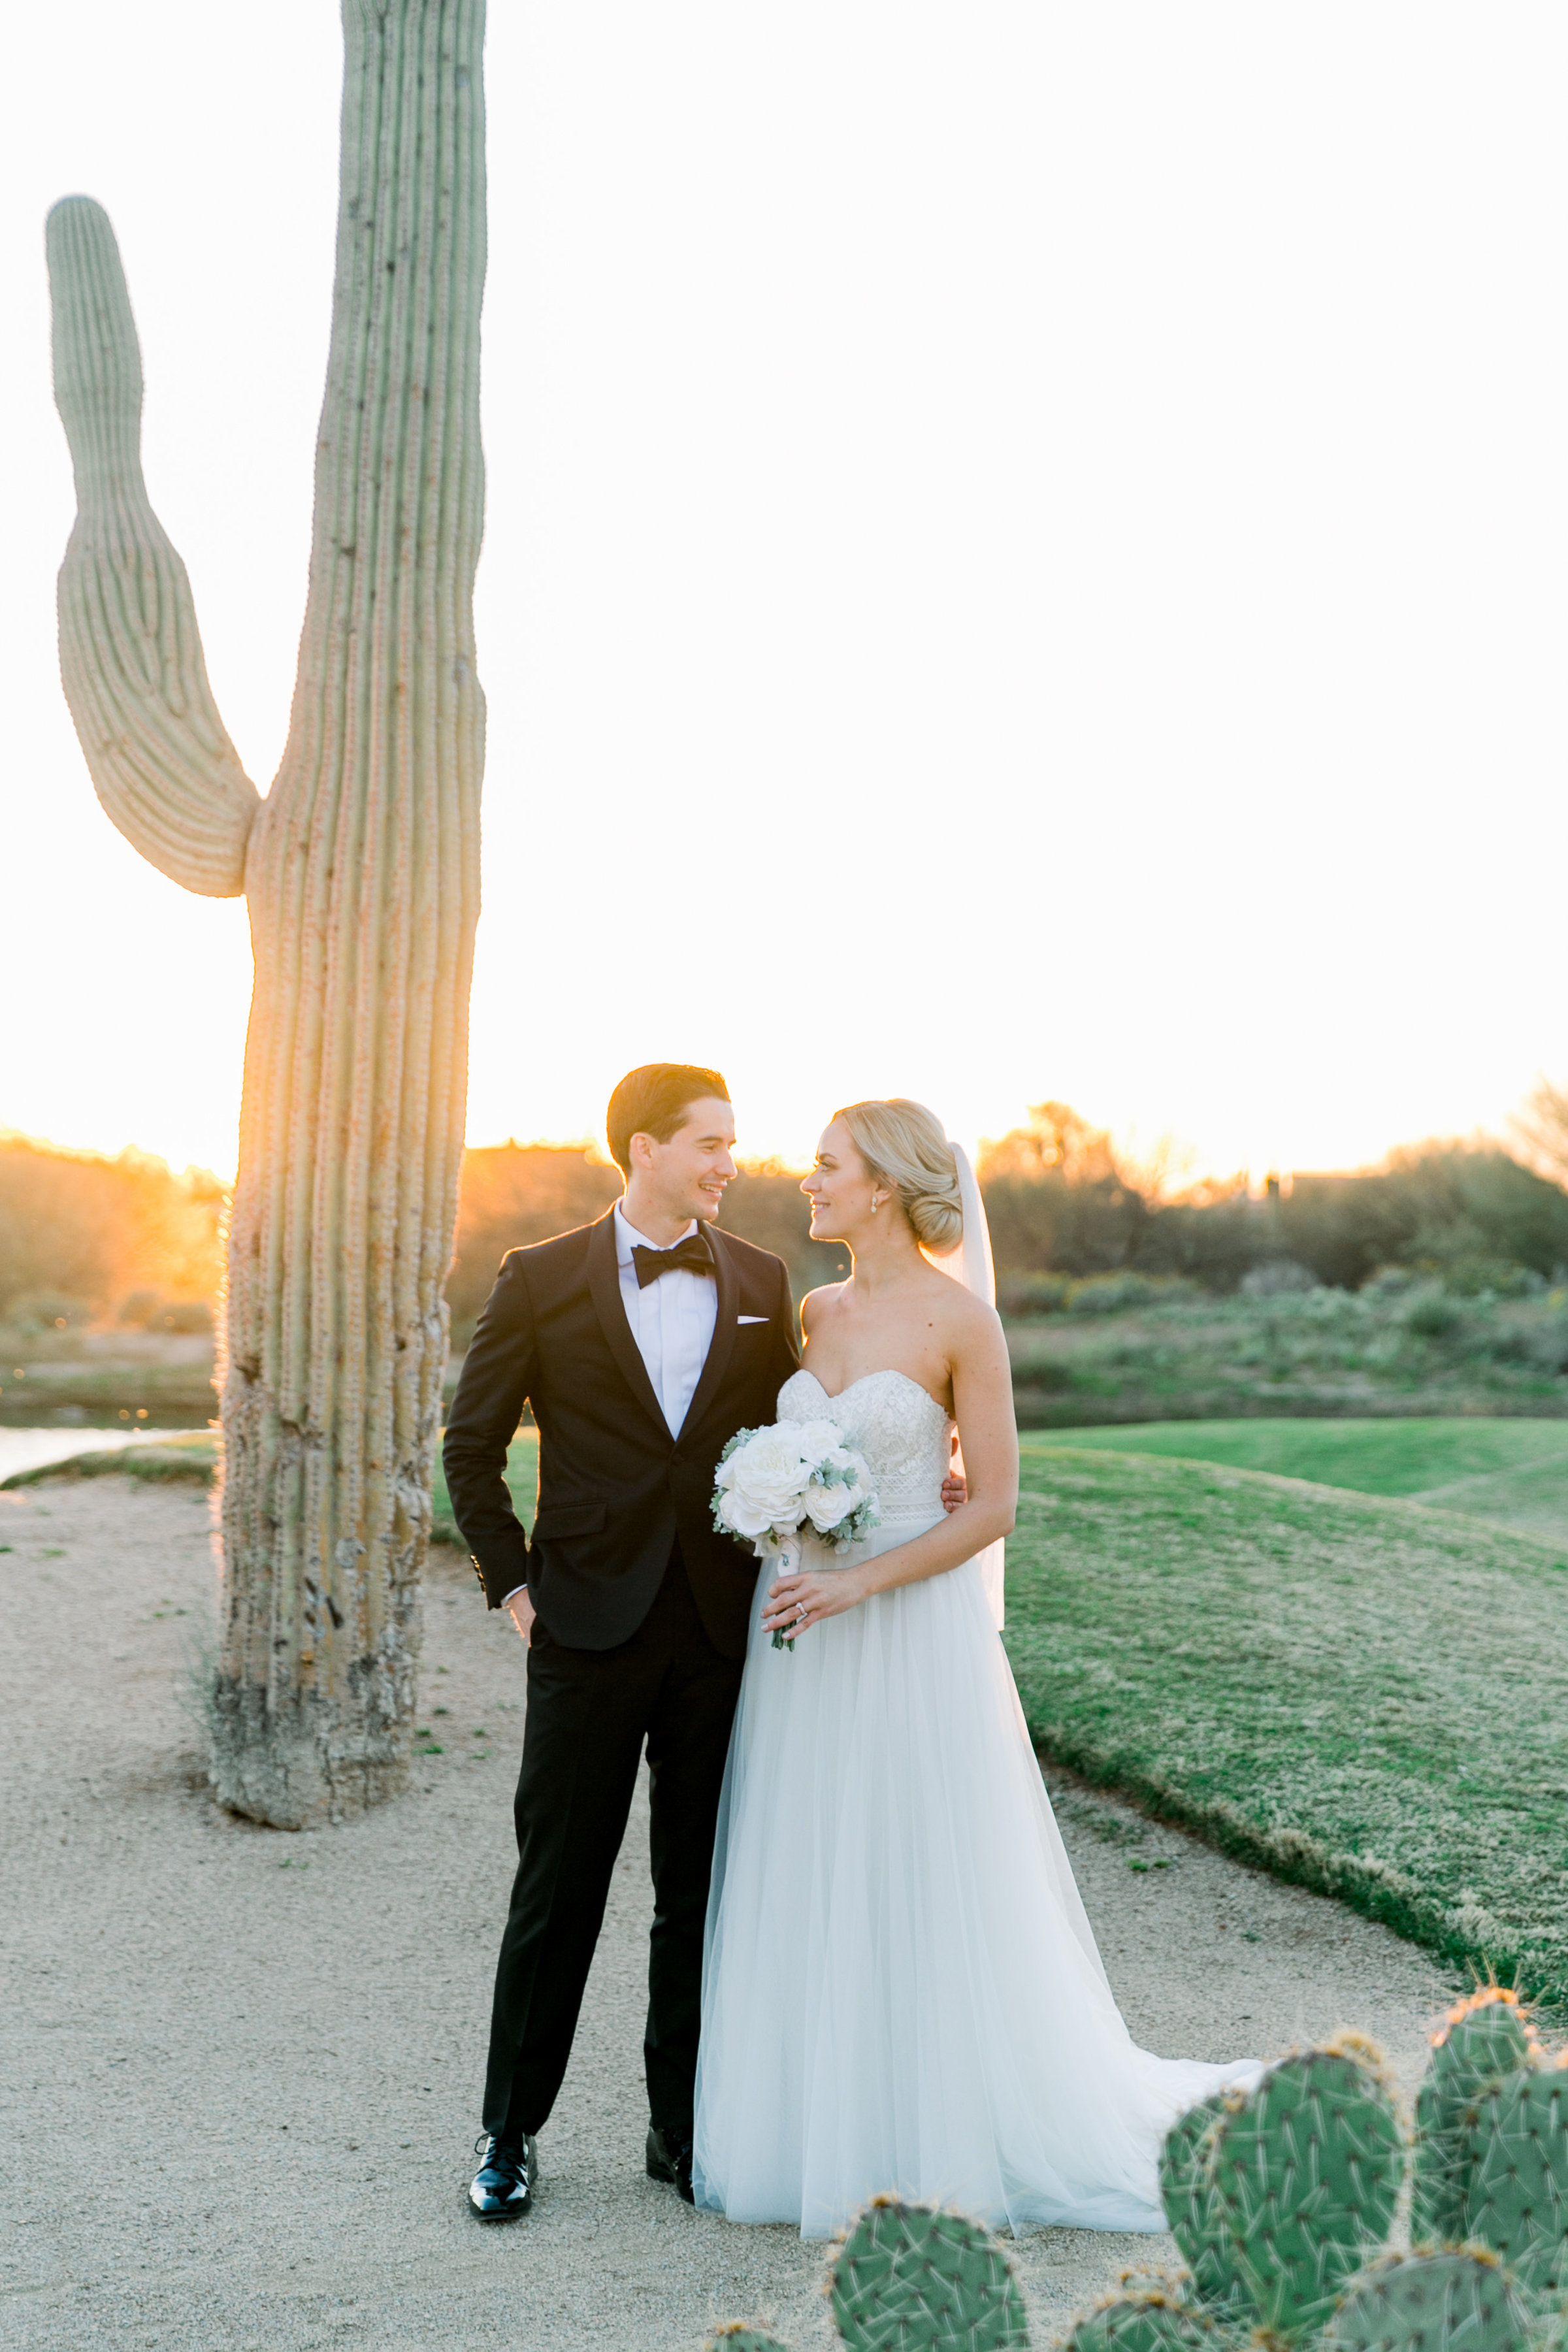 Karlie Colleen Photography - Arizona Wedding at The Troon Scottsdale Country Club - Paige & Shane -745